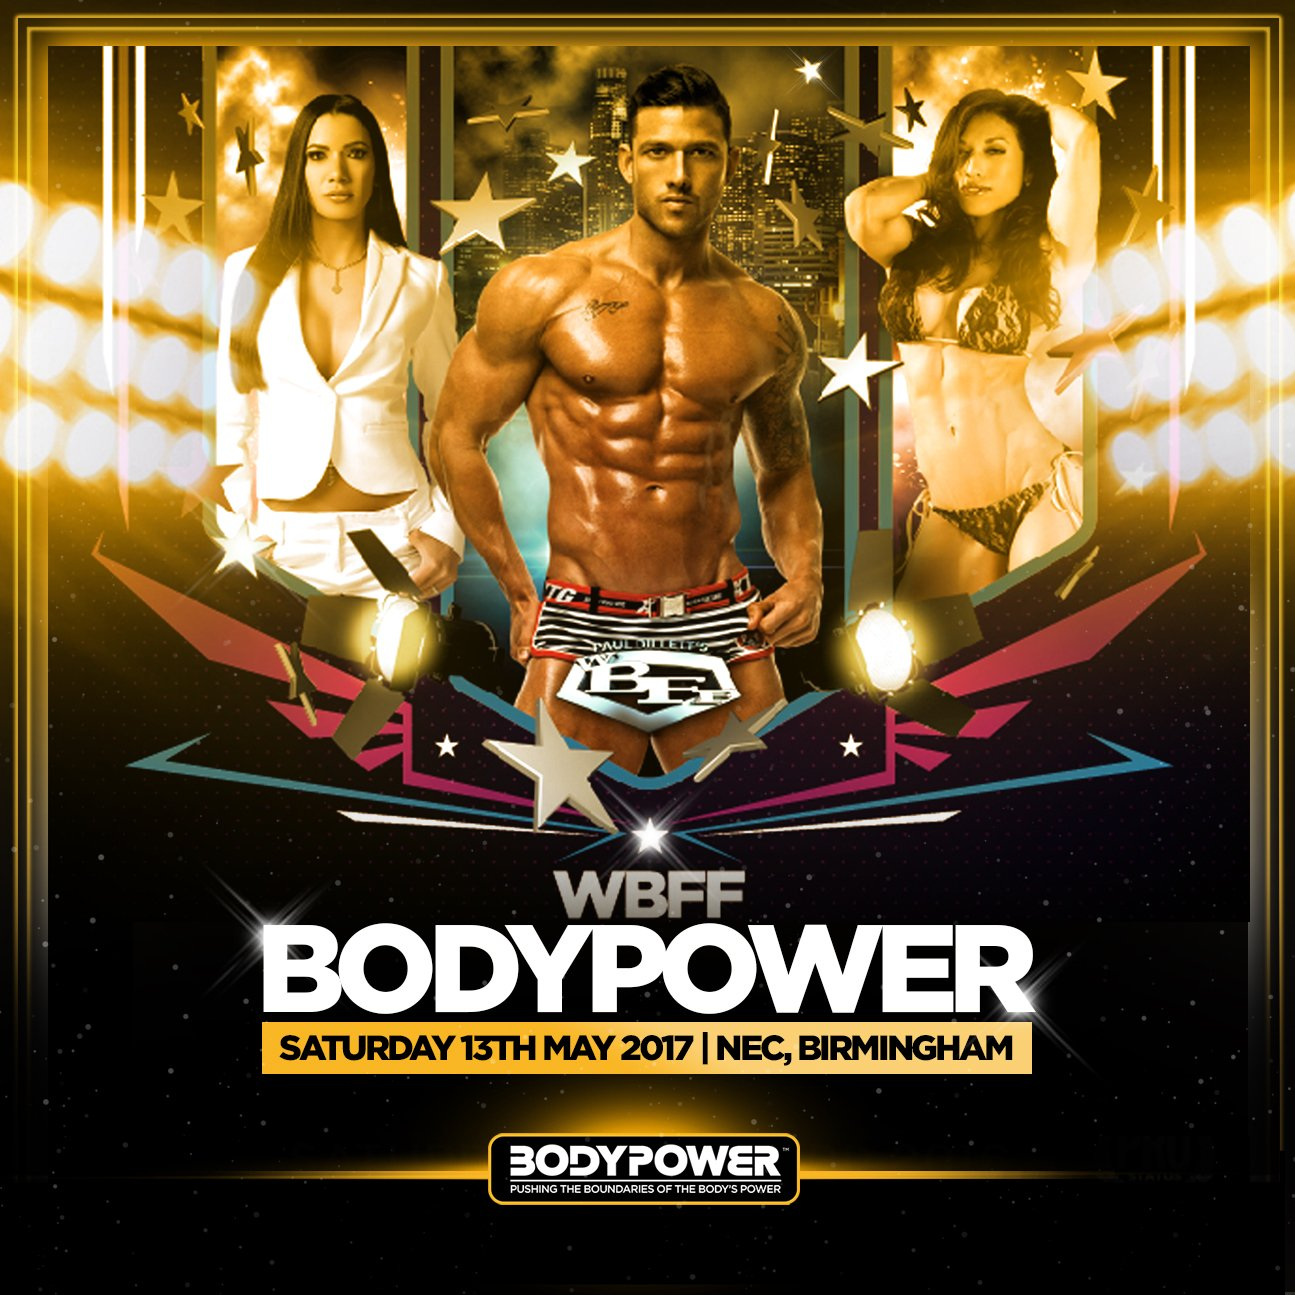 BodyPowerExpo on Twitter: